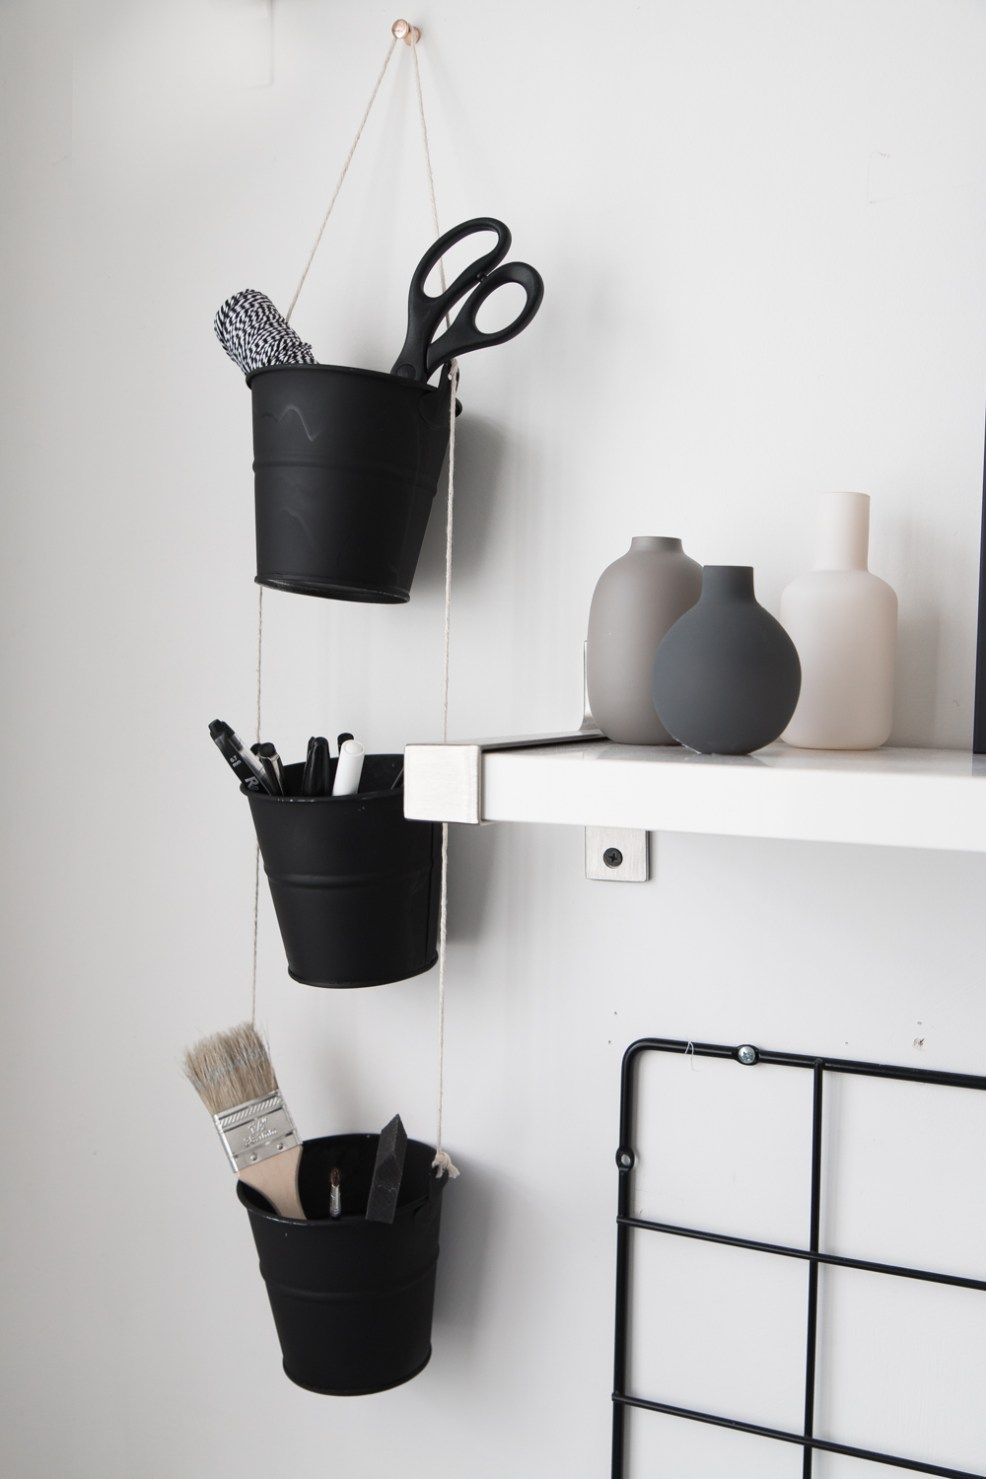 DIY Hanging Buckets Organizer | Organizations, Diys and Organizing